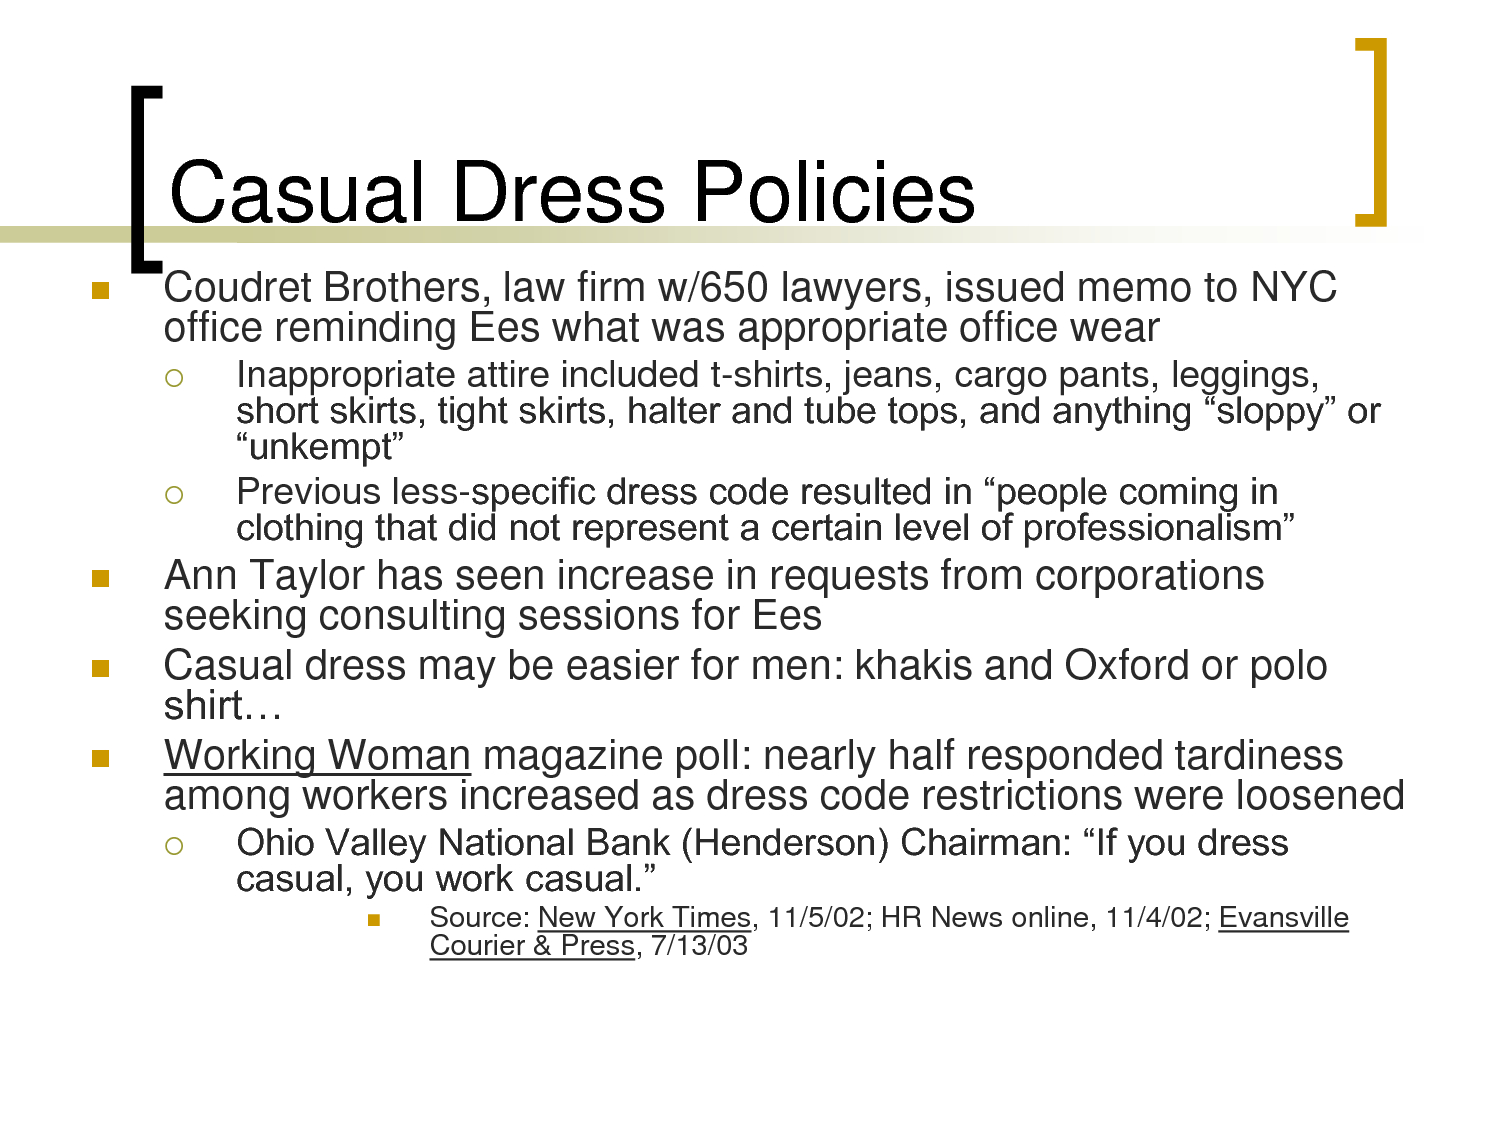 Canadian dress code policy for offices